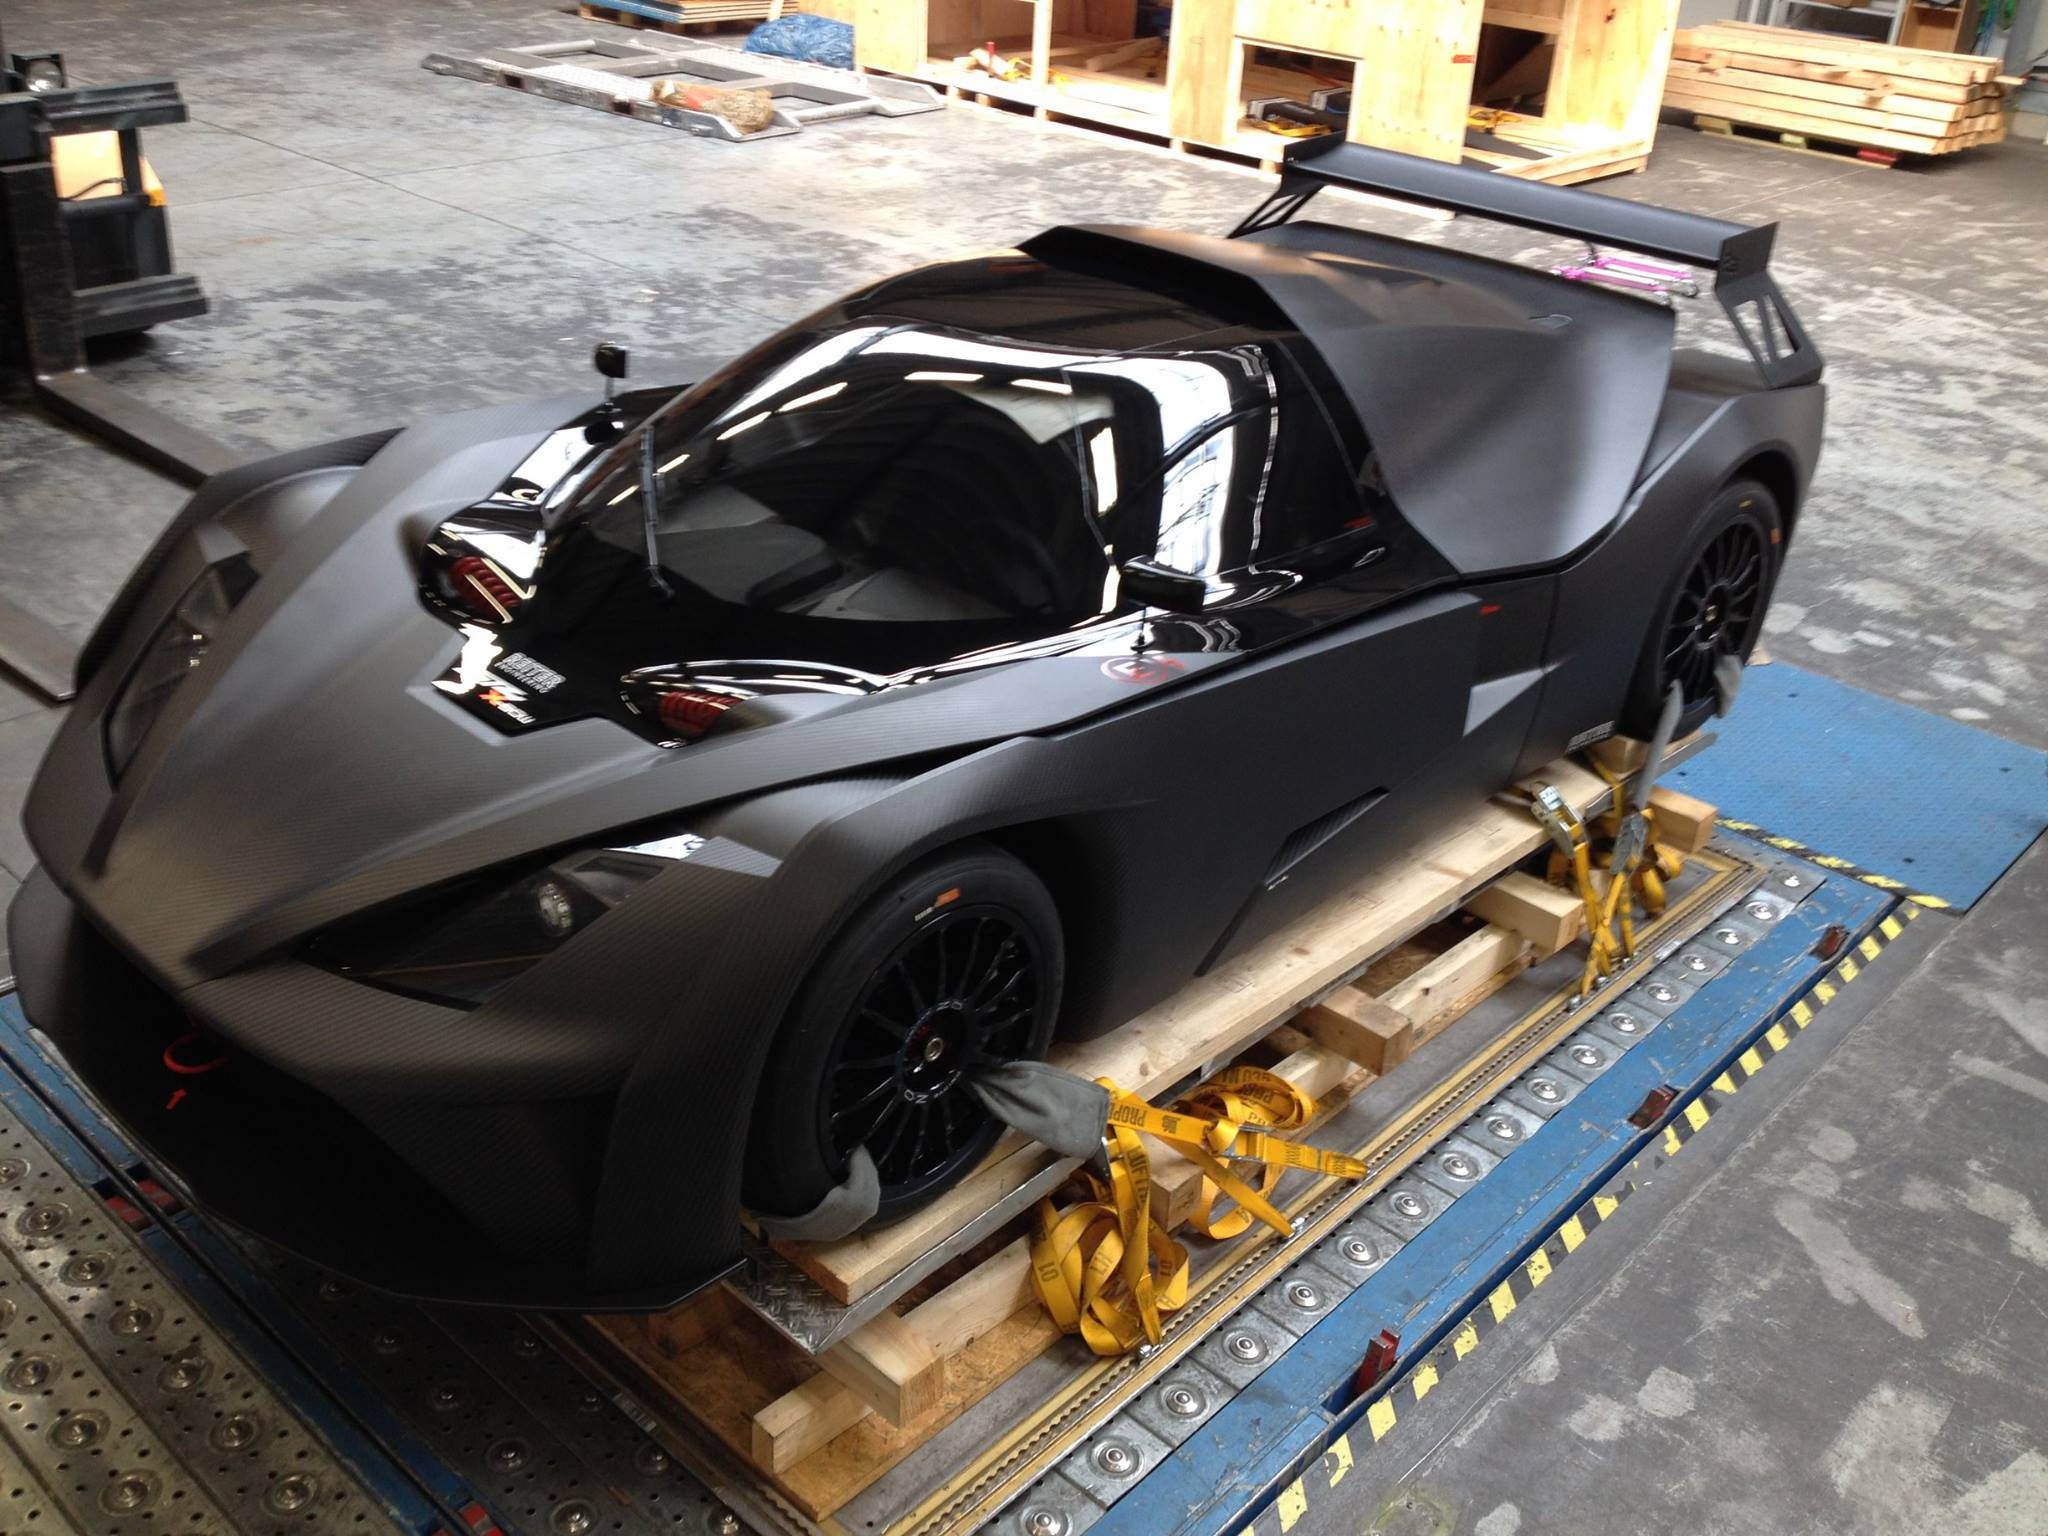 THE KTM X-BOW GT4 ELIGIBLE FOR SPRINT X CHAMPIONSHIP!